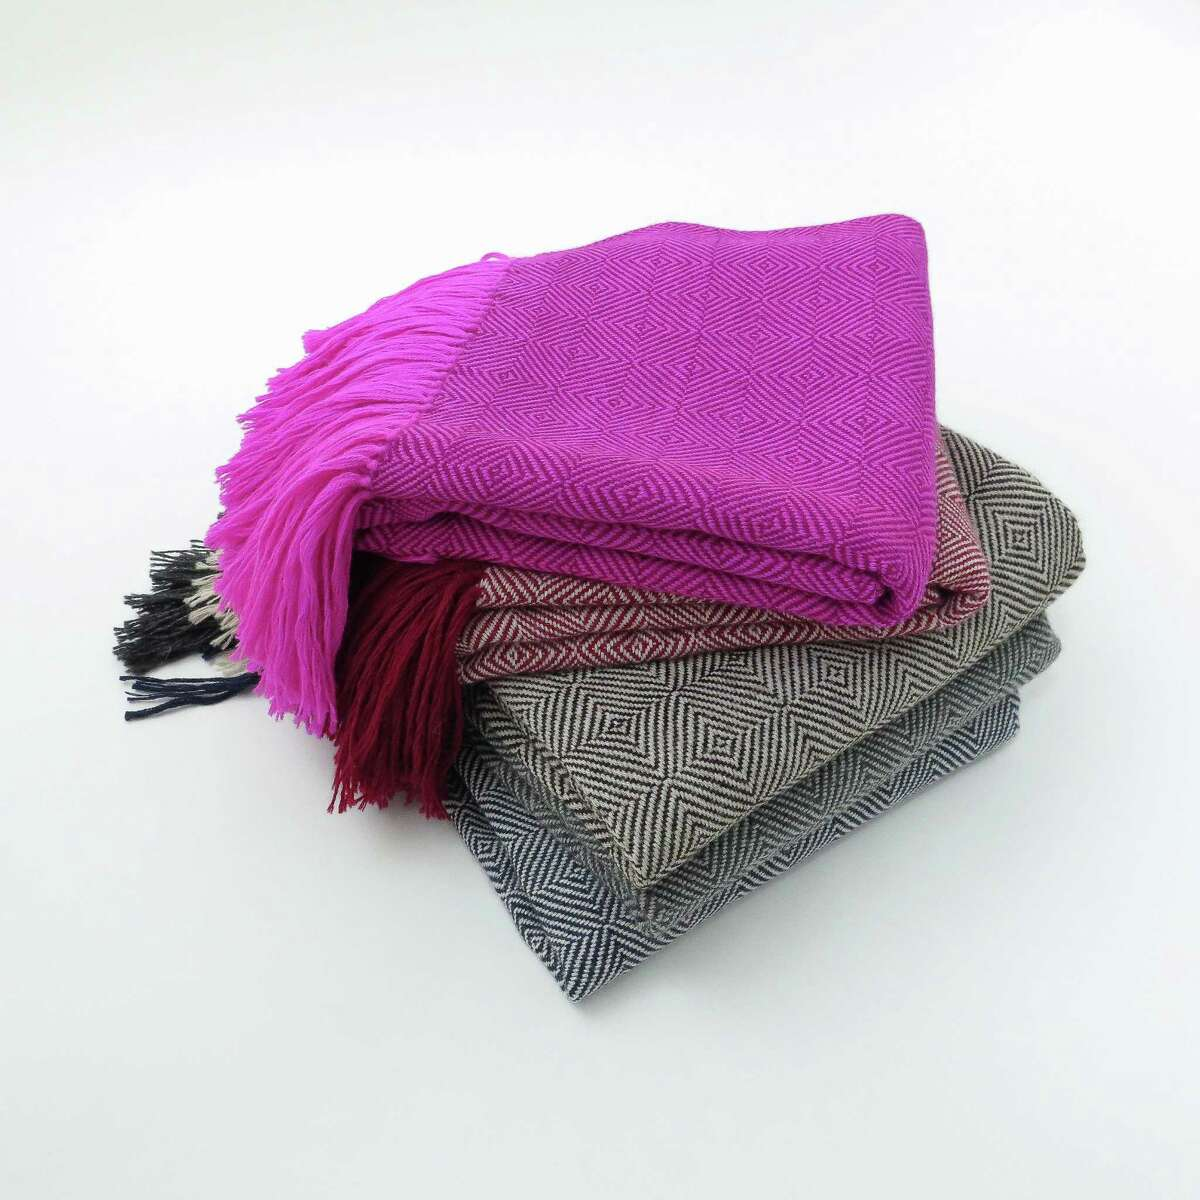 """""""Alpaca and handwoven cotton throws you can throw on your bed or use as a shawl."""" - Erica Tanov, clothing and textile designer and store owner. Alpaca throws, $624 each. shop.ericatanov.com"""